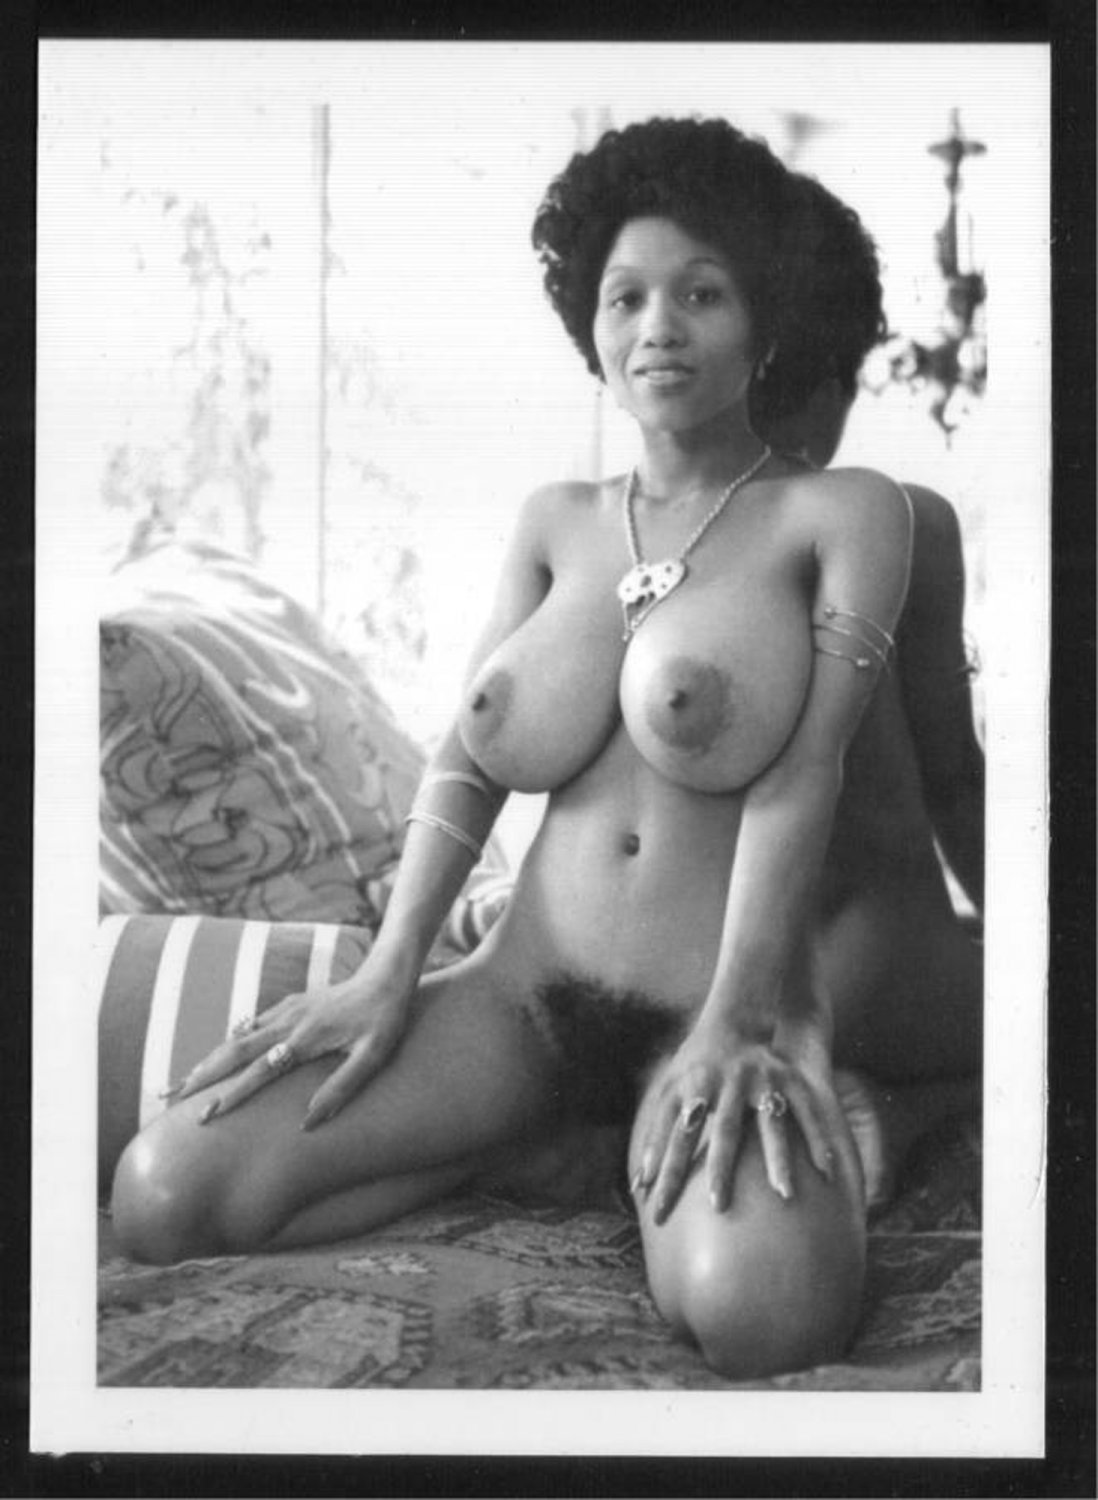 EBONY SYLVIA MCFARLAND TOPLESS NUDE HUGE BREASTS HAIRY PUSSY NEW REPRINT 5X7 SM-79